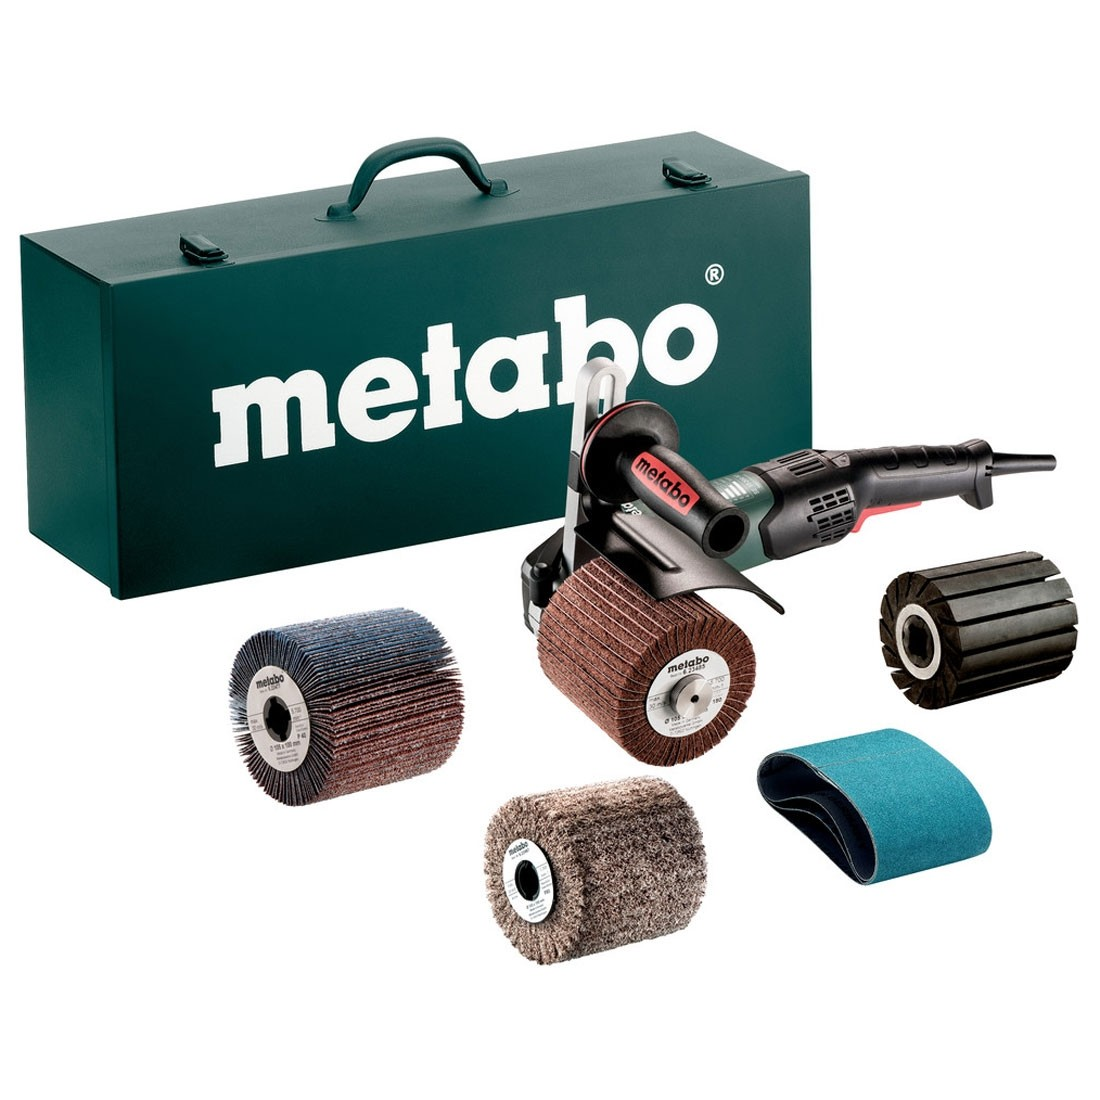 Metabo SE 17-200 RT SET Burnishing Machine Grinder Kit 1700W